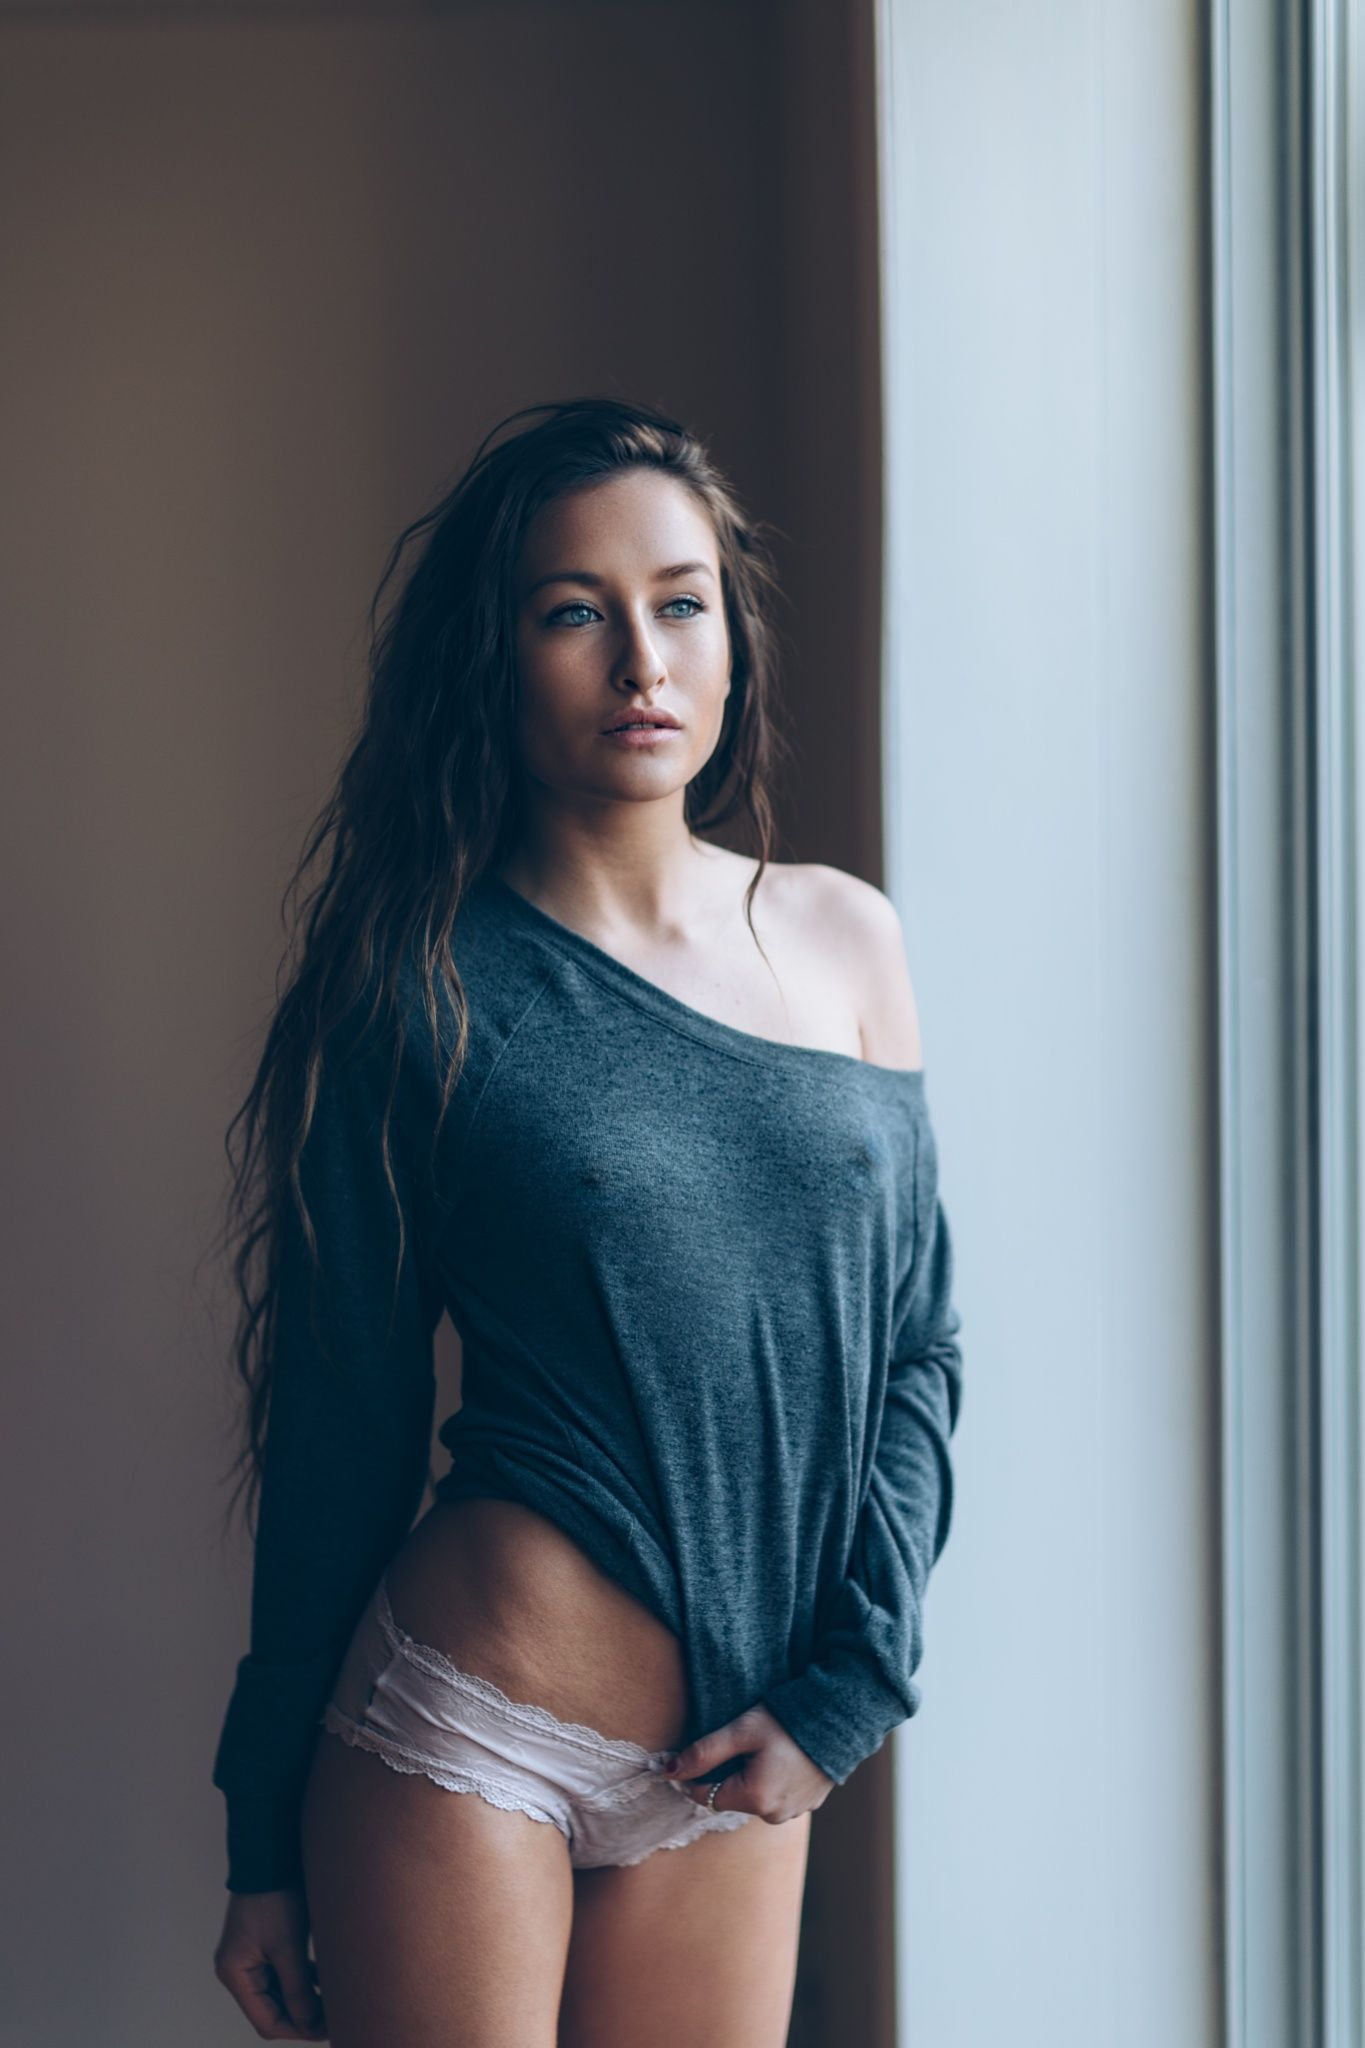 T shirt and panties by ramon jamar on 500px portrait for T shirt and panties